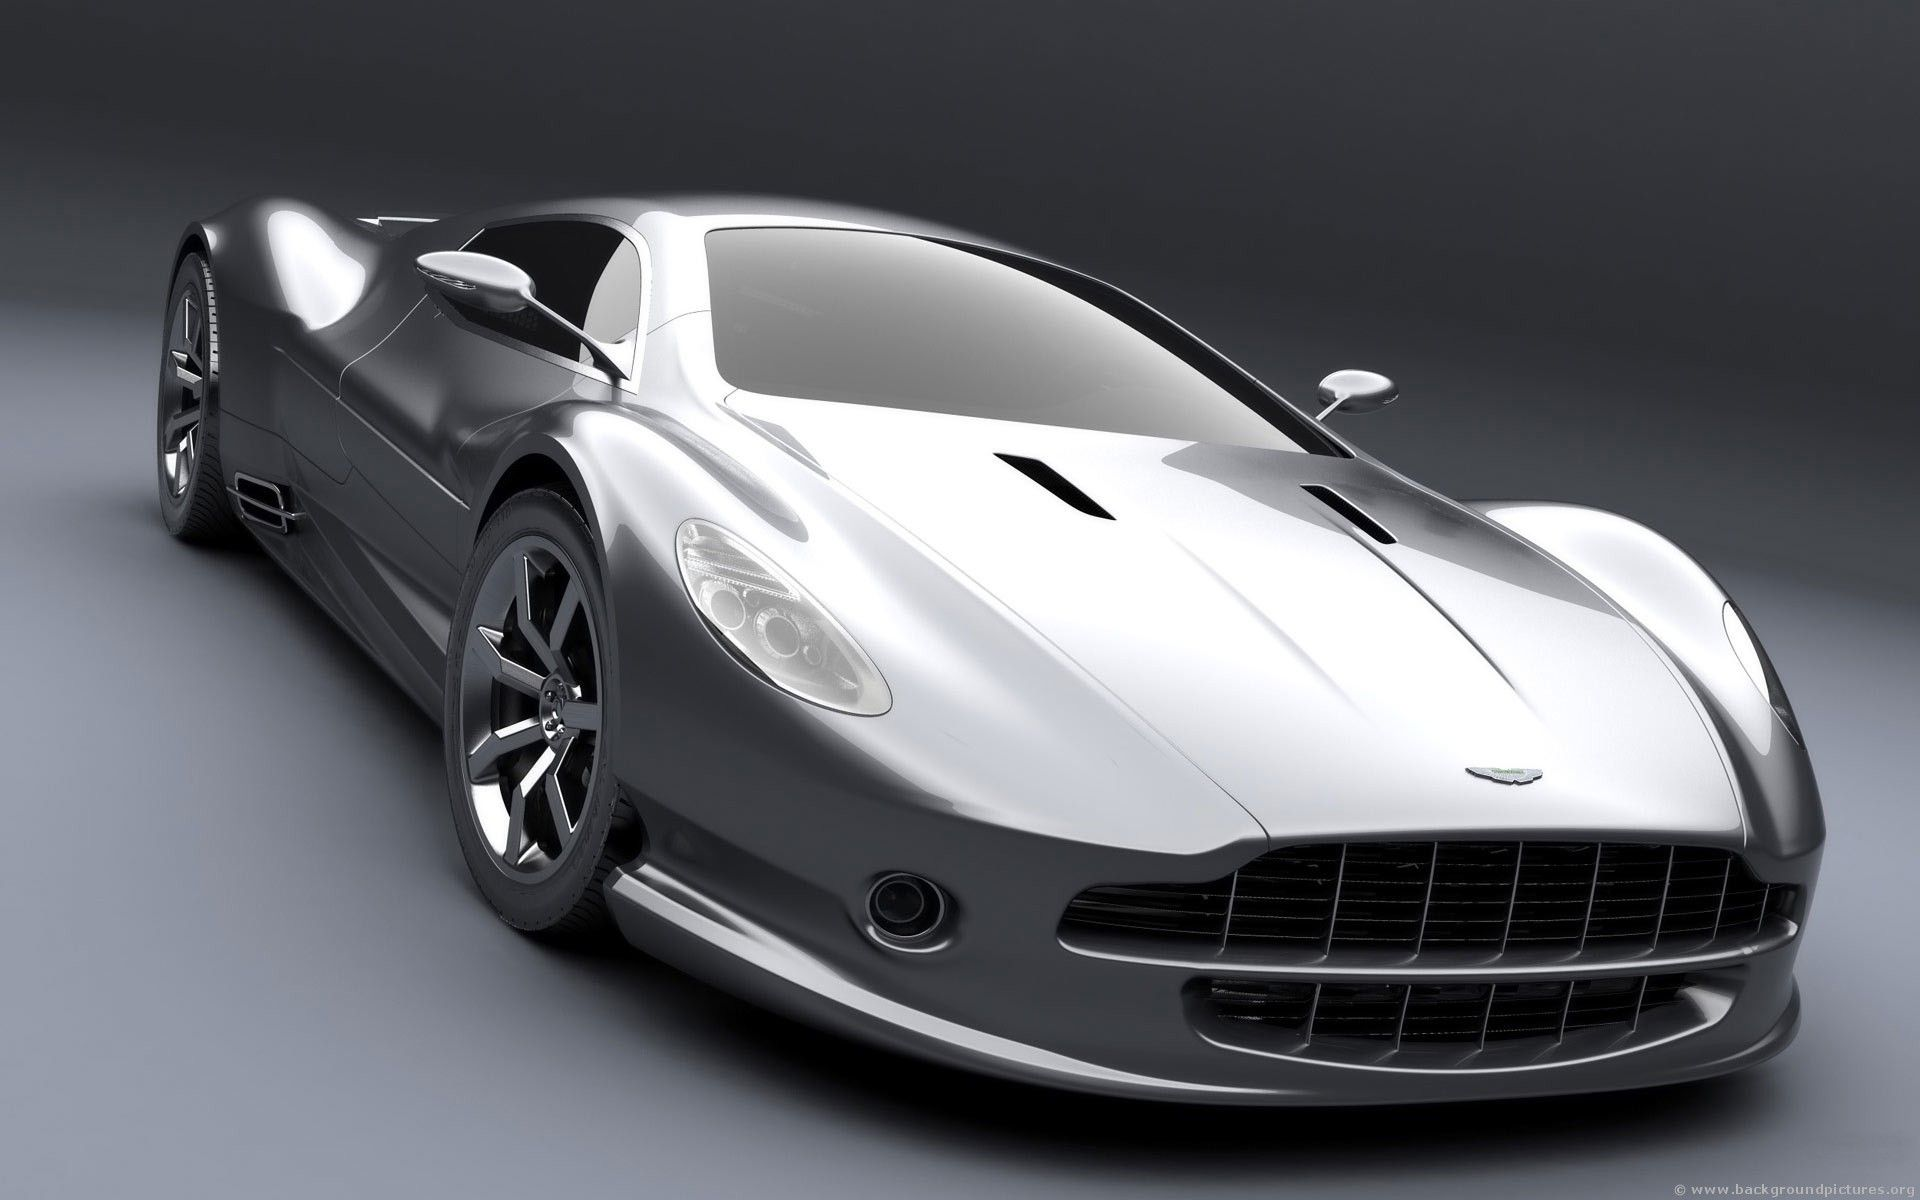 Concept car magazine cool car wallpapers - Aston Martin Amv10 Concept